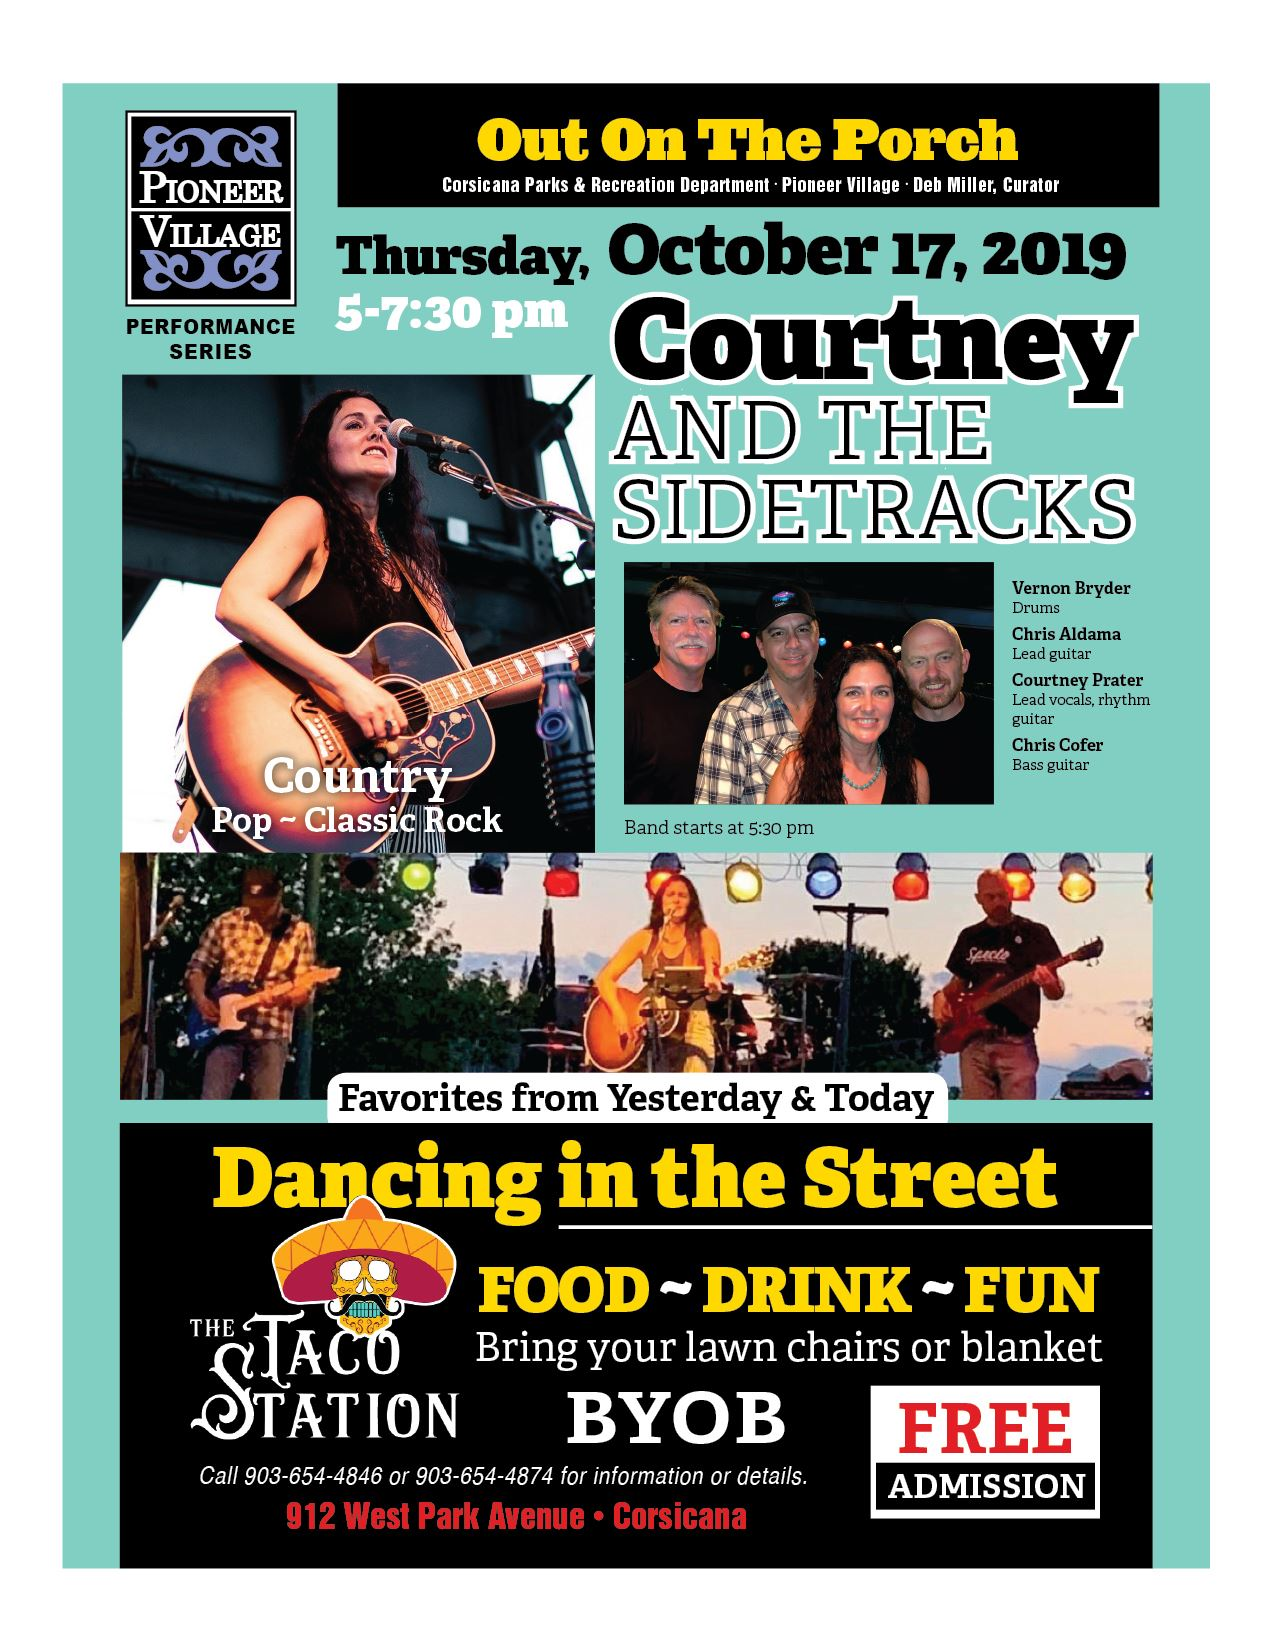 On The Porch Flyer Events October 17, 2019